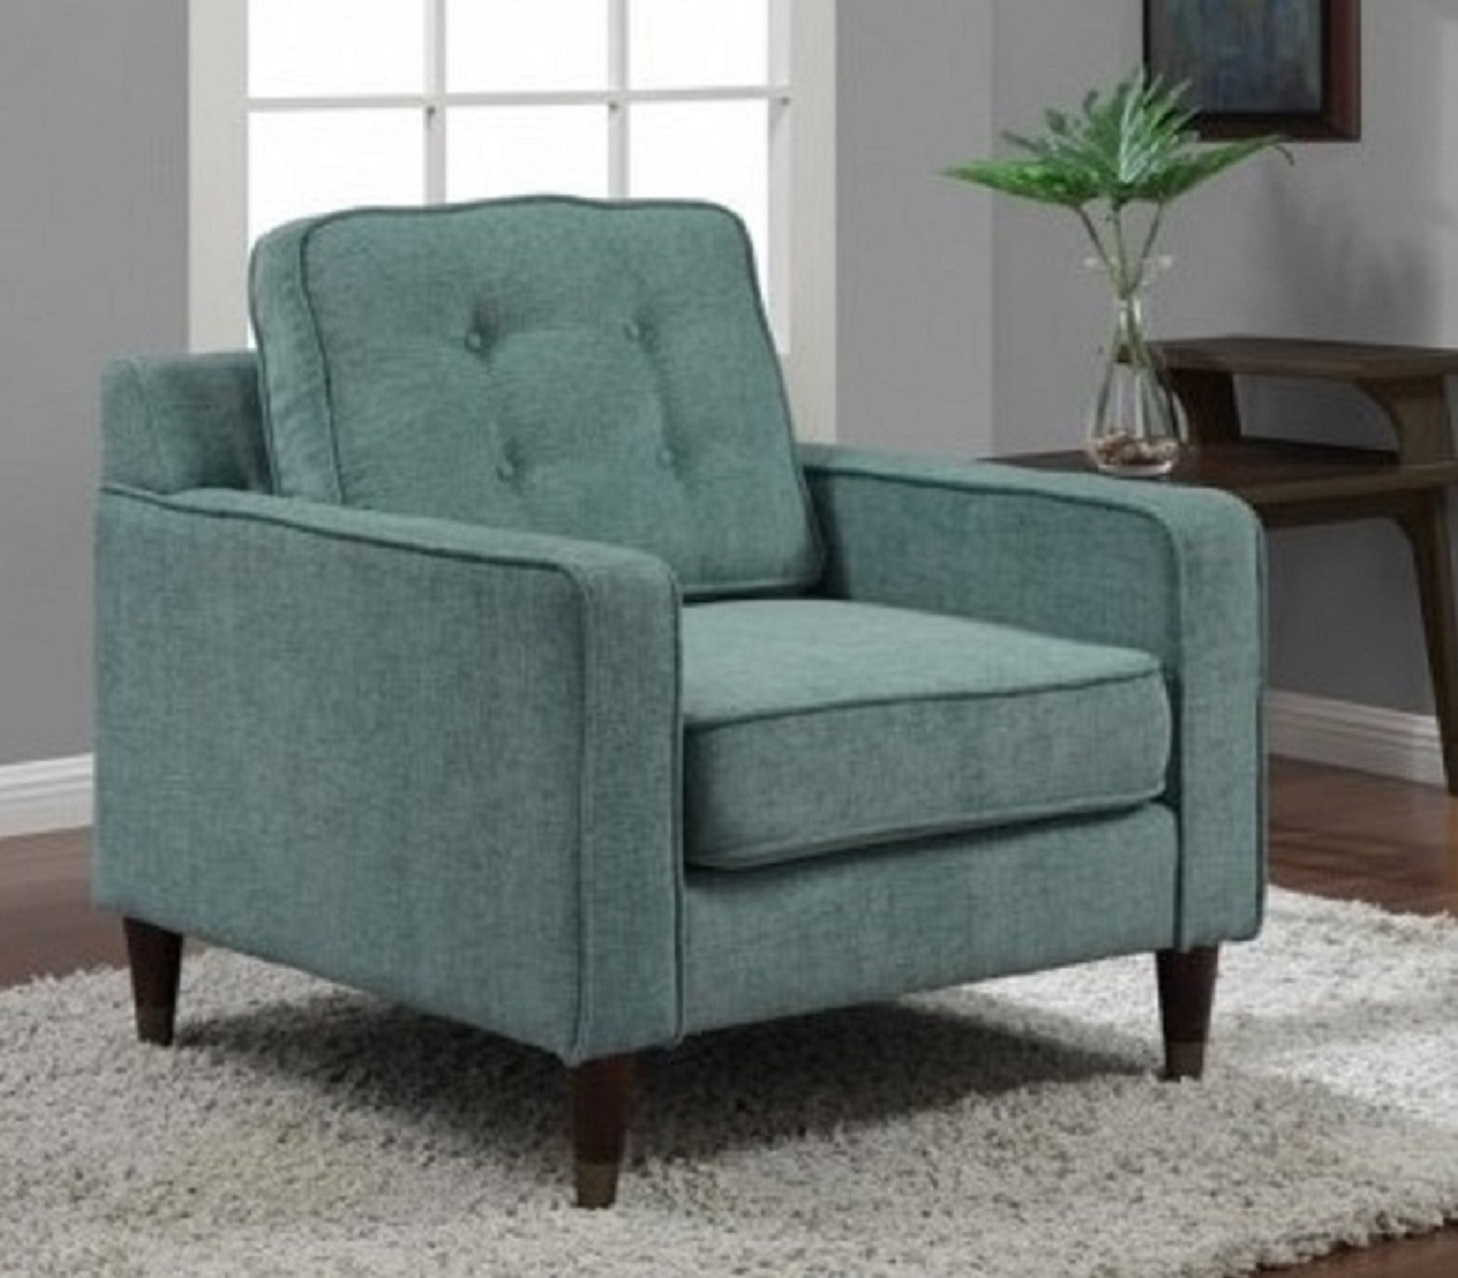 accent armchair retro living room furniture tufted cushion aqua chair